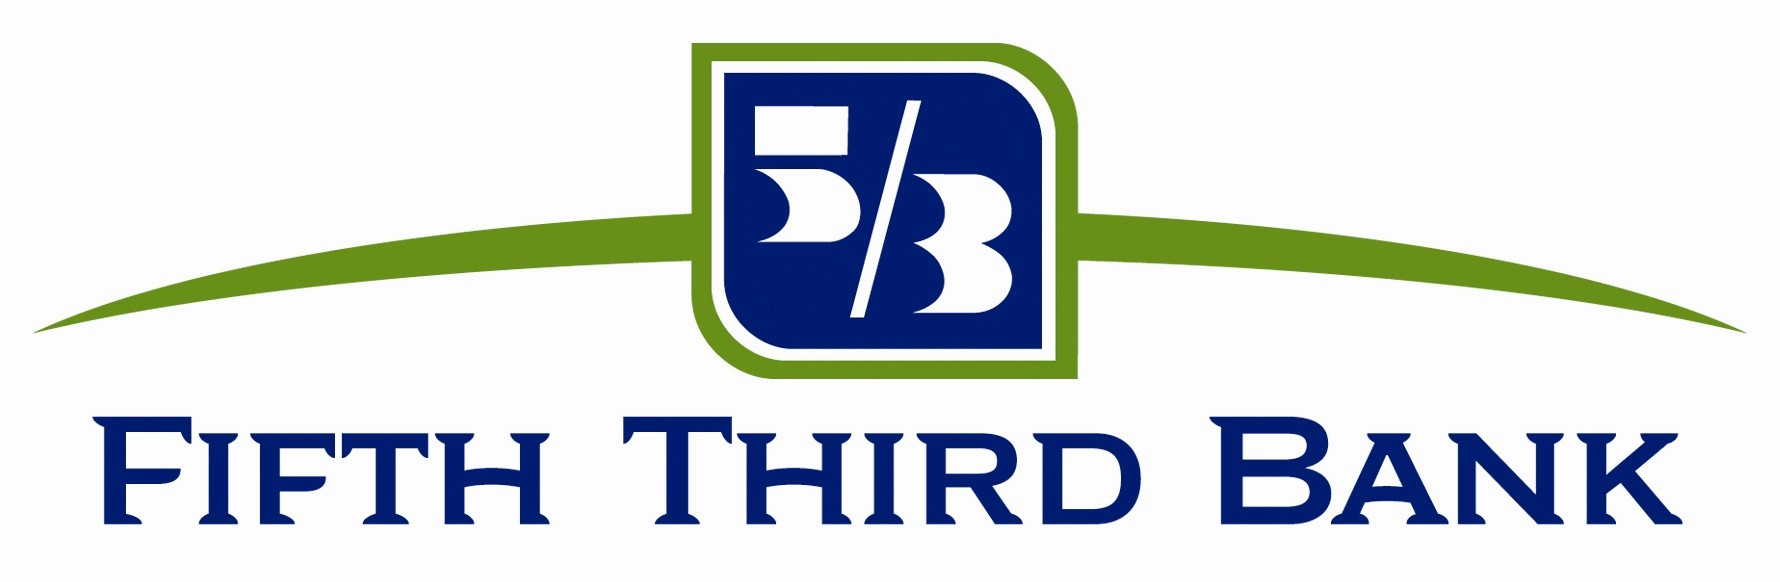 Fifth Third Bank - Mortgage